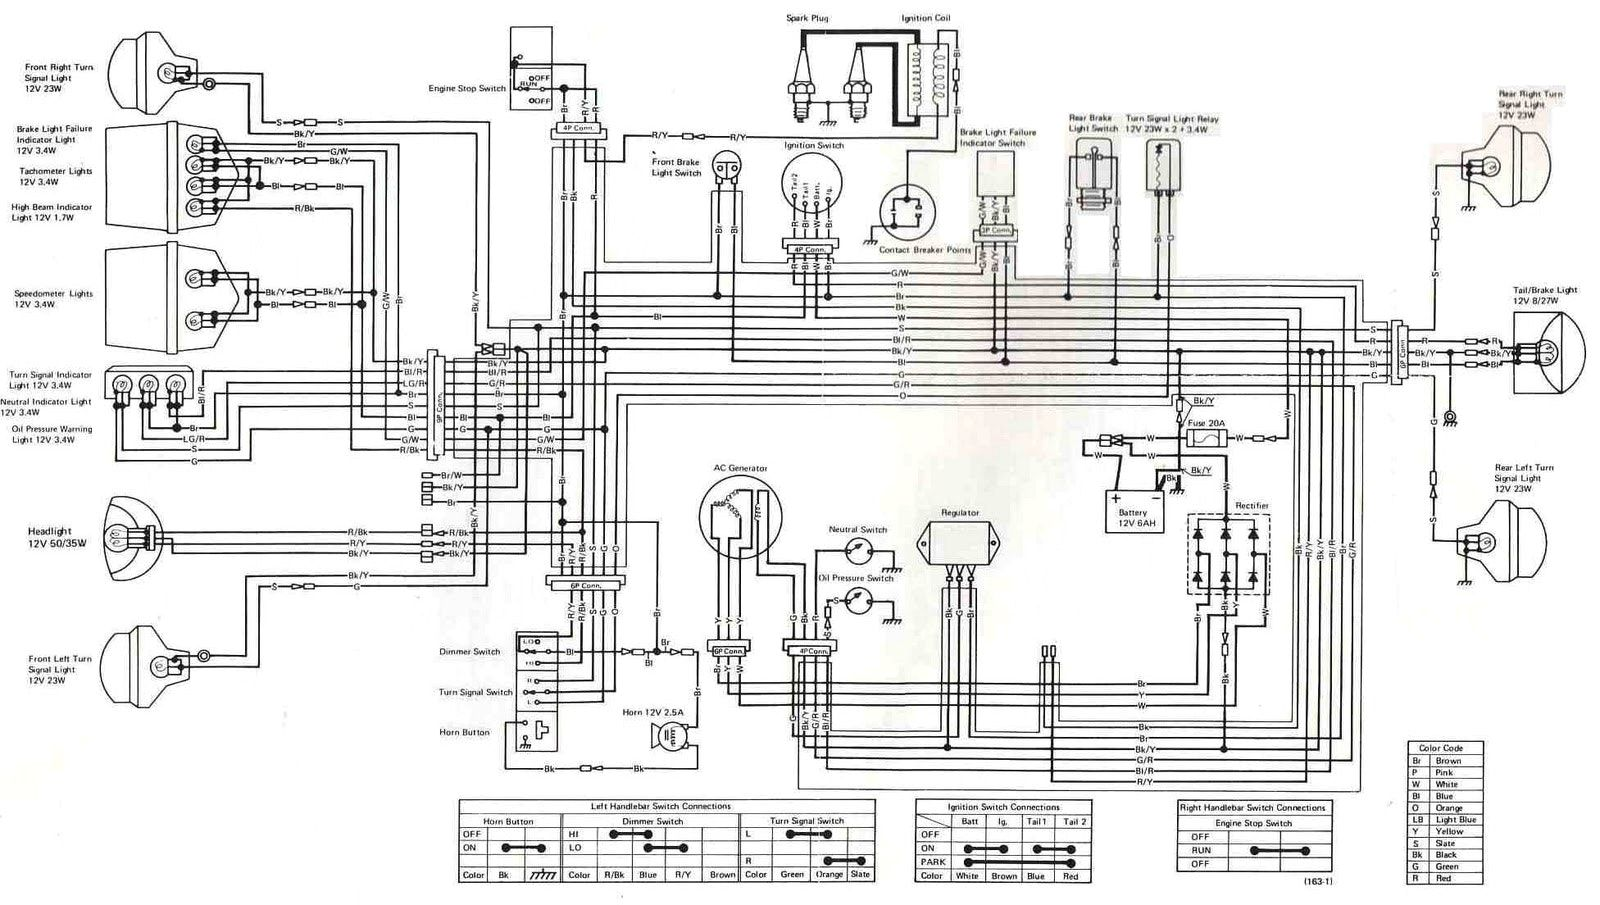 kawasaki 250 ltd wiring diagram worksheet and wiring diagram u2022 rh  bookinc co Kawasaki CSR 305 Parts 1982 Kawasaki CSR 305 Specifications